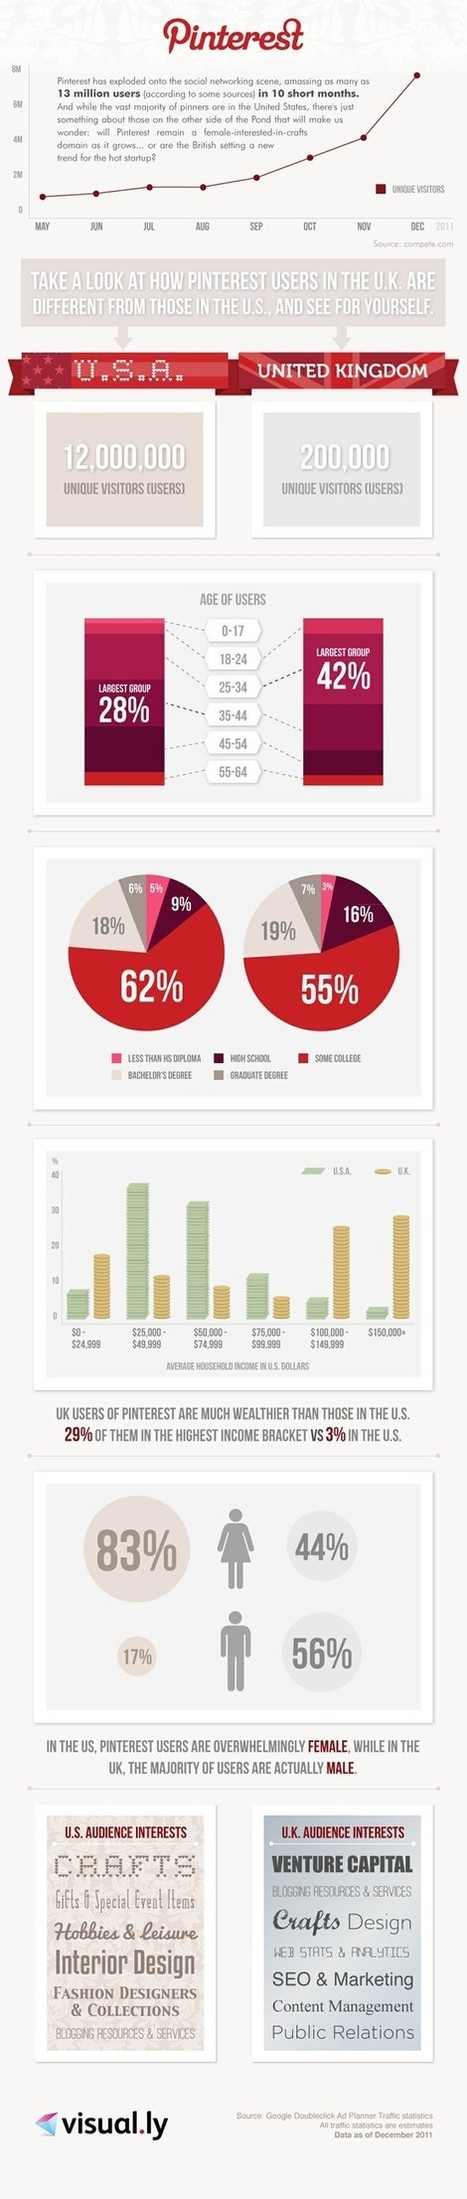 Pinterest: How Do U.S. and UK Users Compare? [INFOGRAPHIC] | ten Hagen on Social Media | Scoop.it